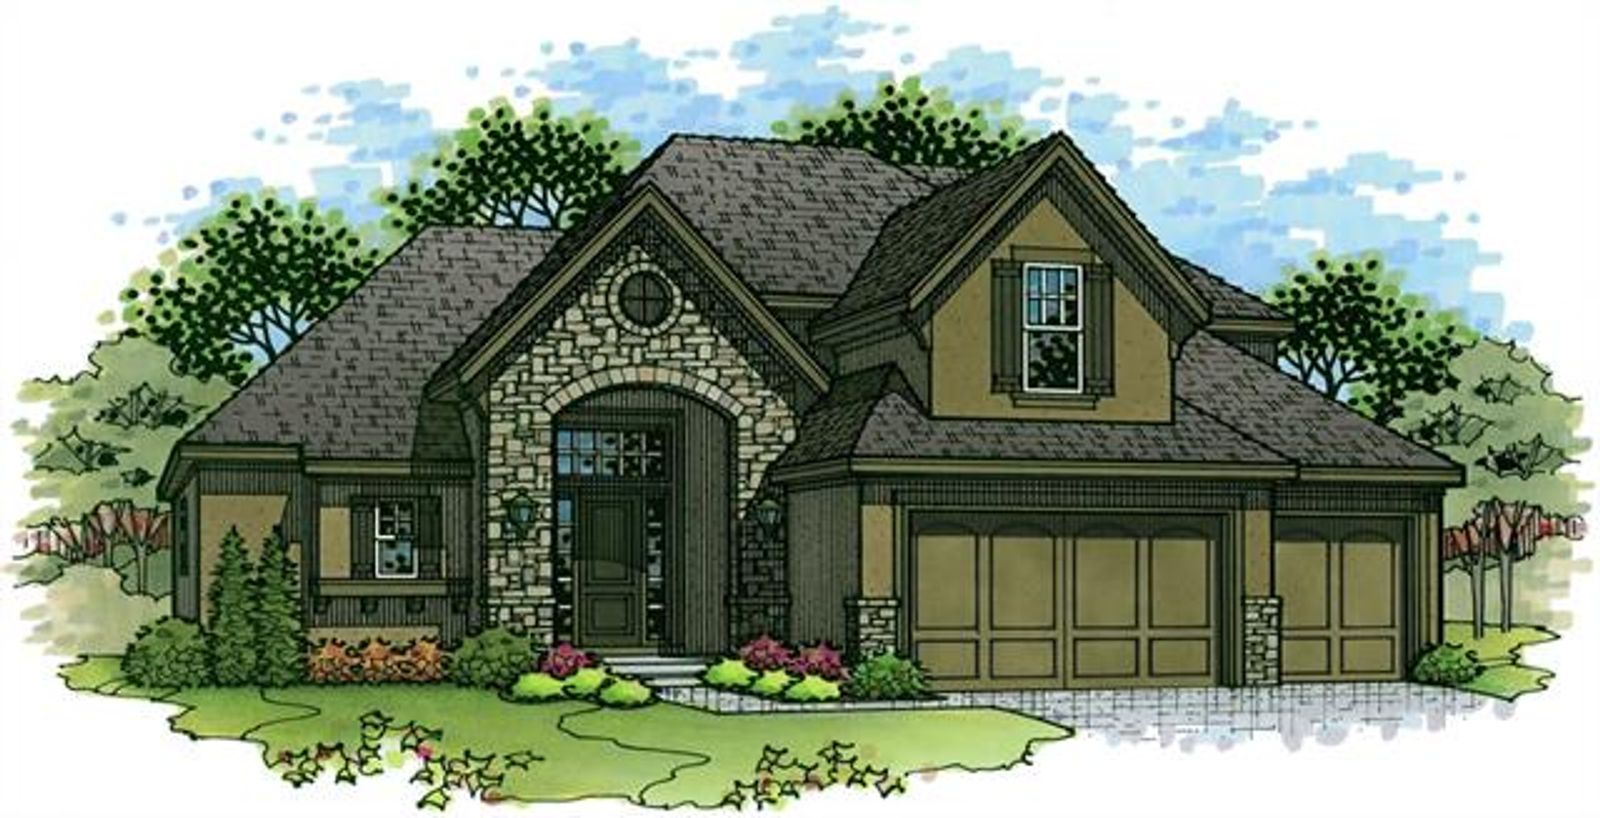 This is Elevation 2 for the New Haven 1.5 Story which will be built on Lot 107 - 12153 S Solomon Rd in the Estates of Forest View.